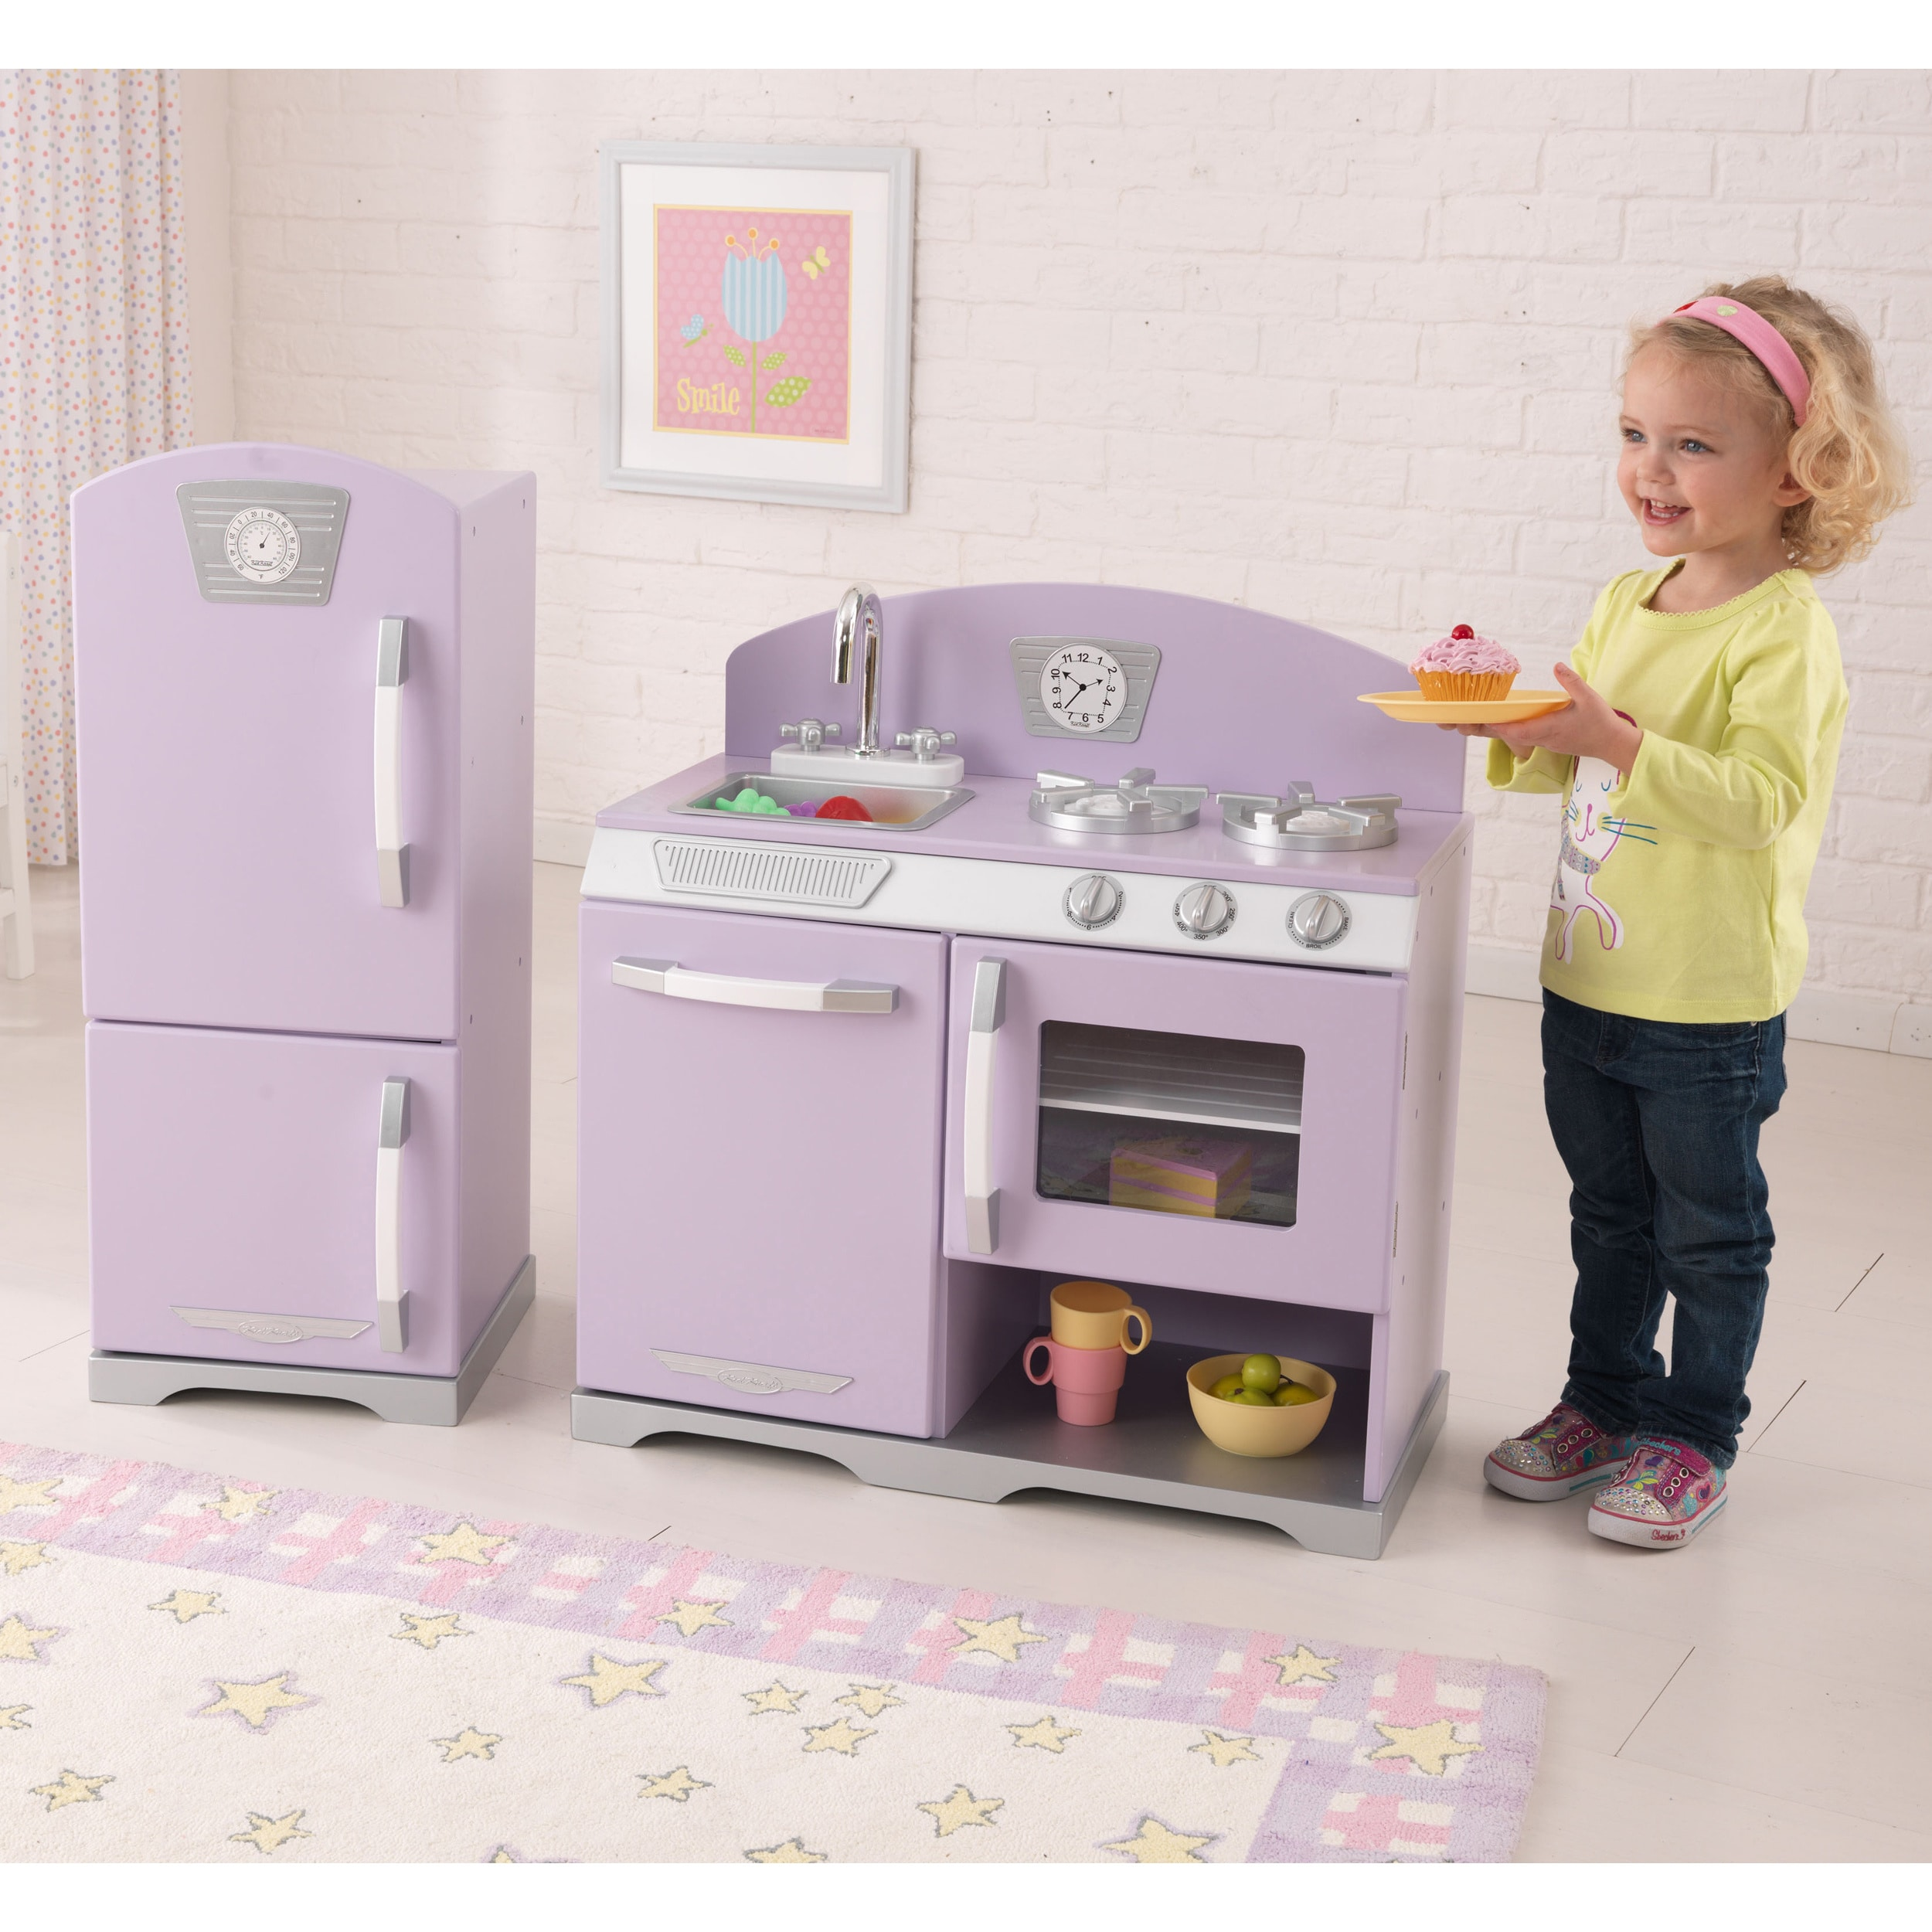 shop kidkraft retro kitchen and refrigerator free shipping today overstockcom 7179423 - Kidkraft Vintage Kitchen